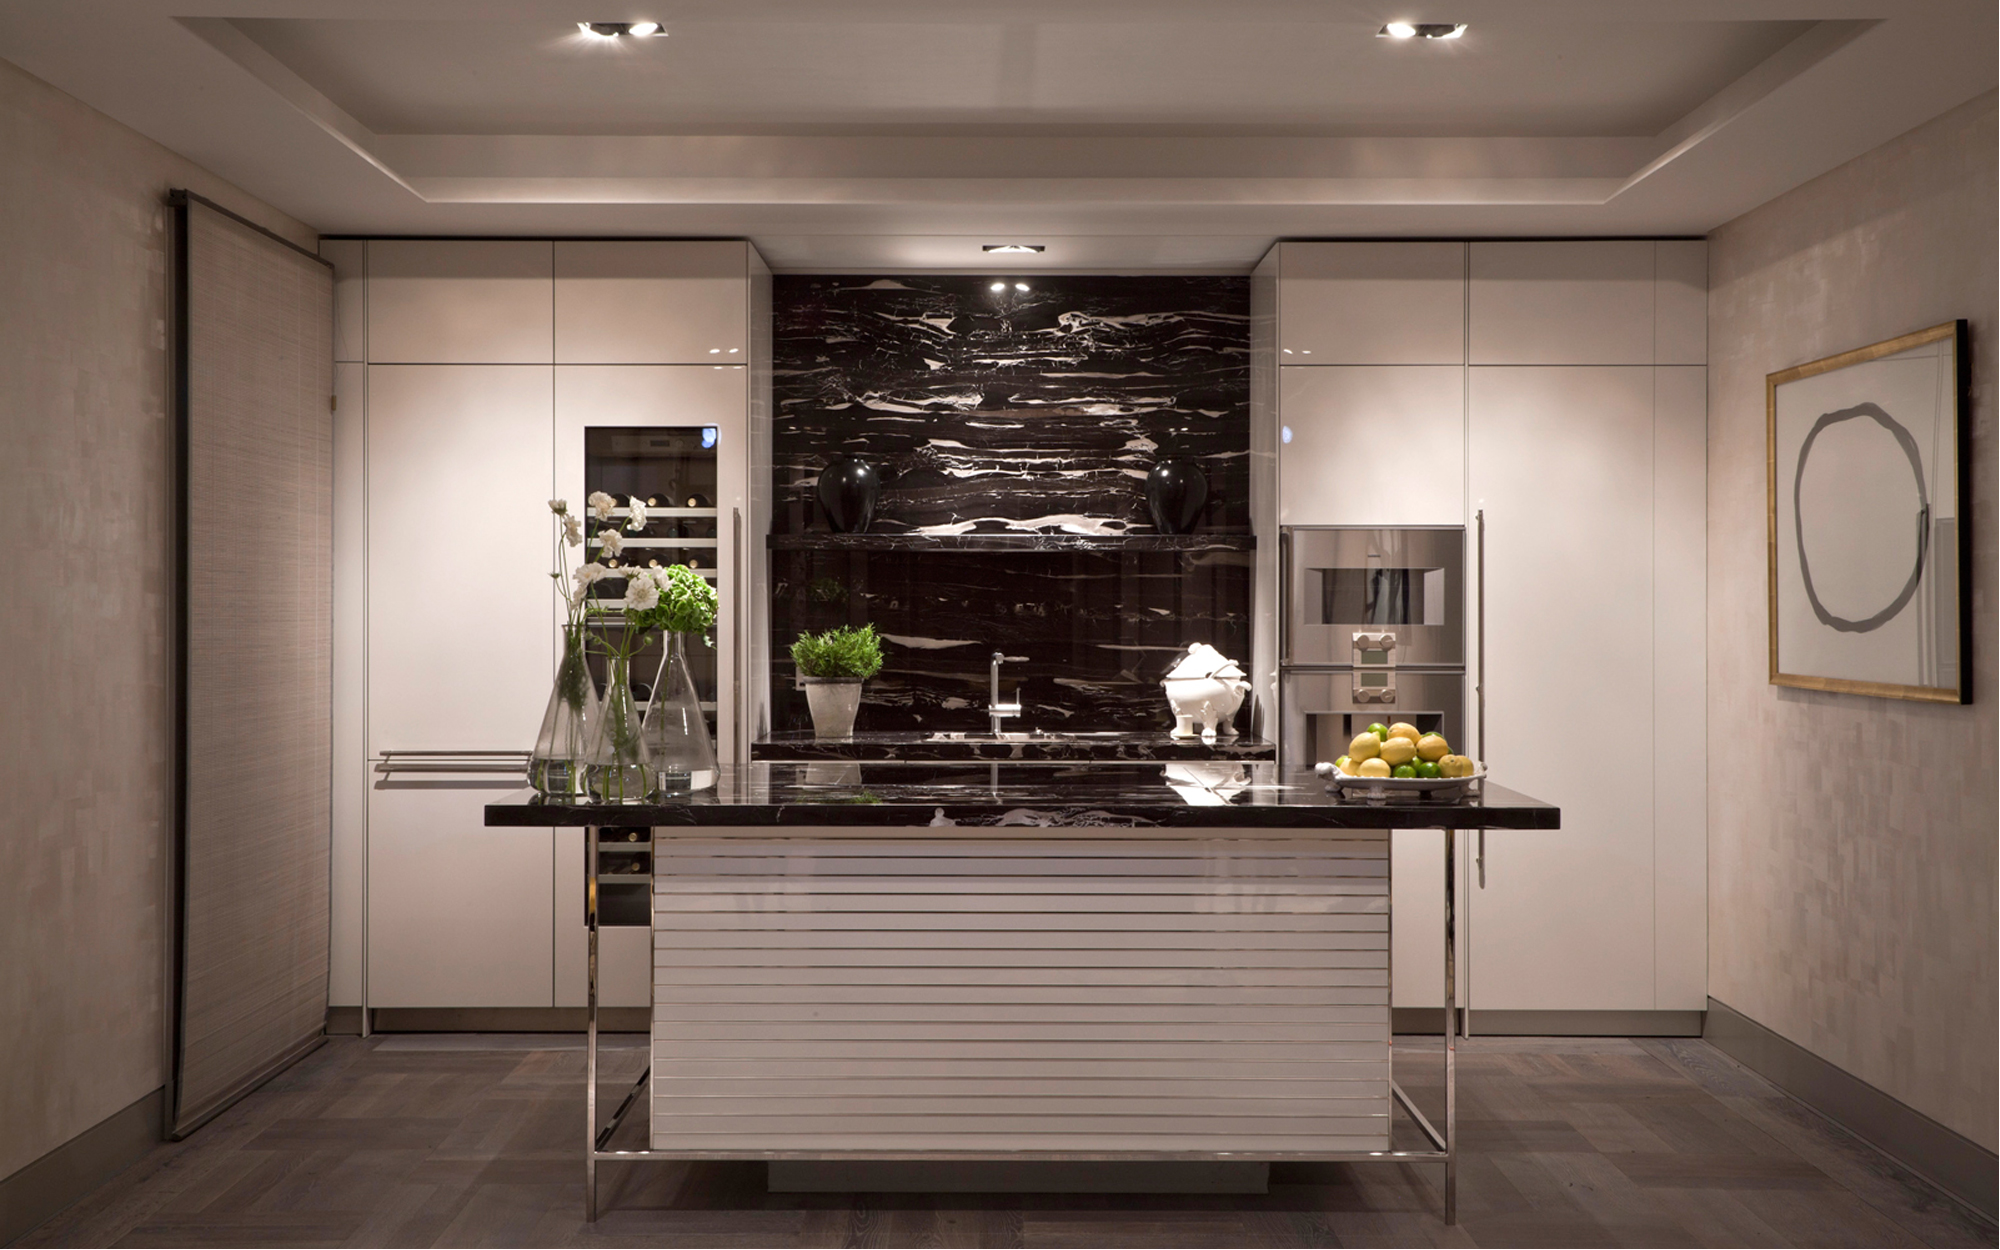 Modern design kitchen david collins Top 10 David Collins Design Ideas 04 2000x1250 1